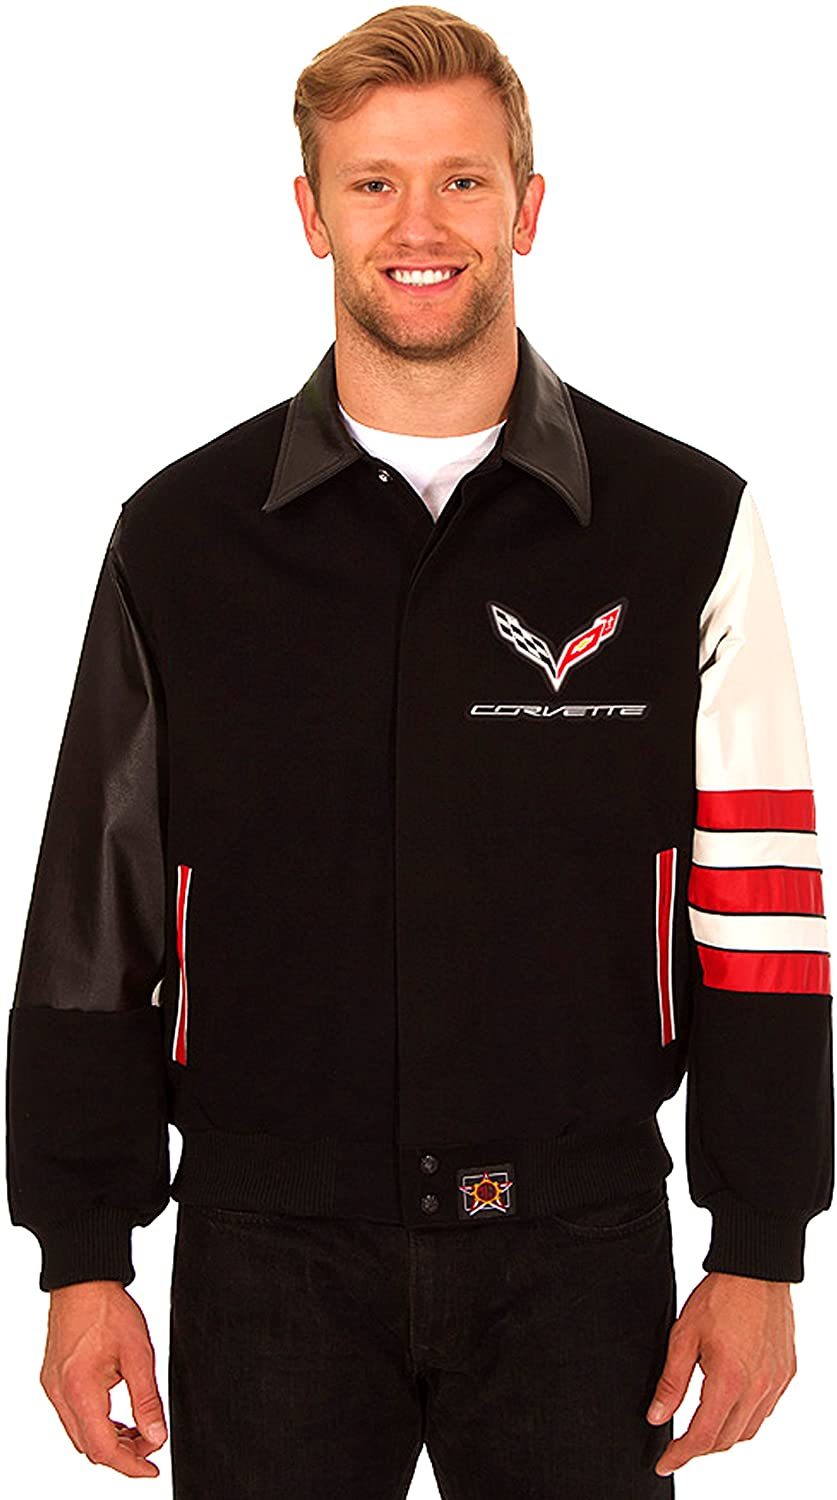 Chevy Corvette Men's Wool & Leather Jacket with Embroidered Applique Logos